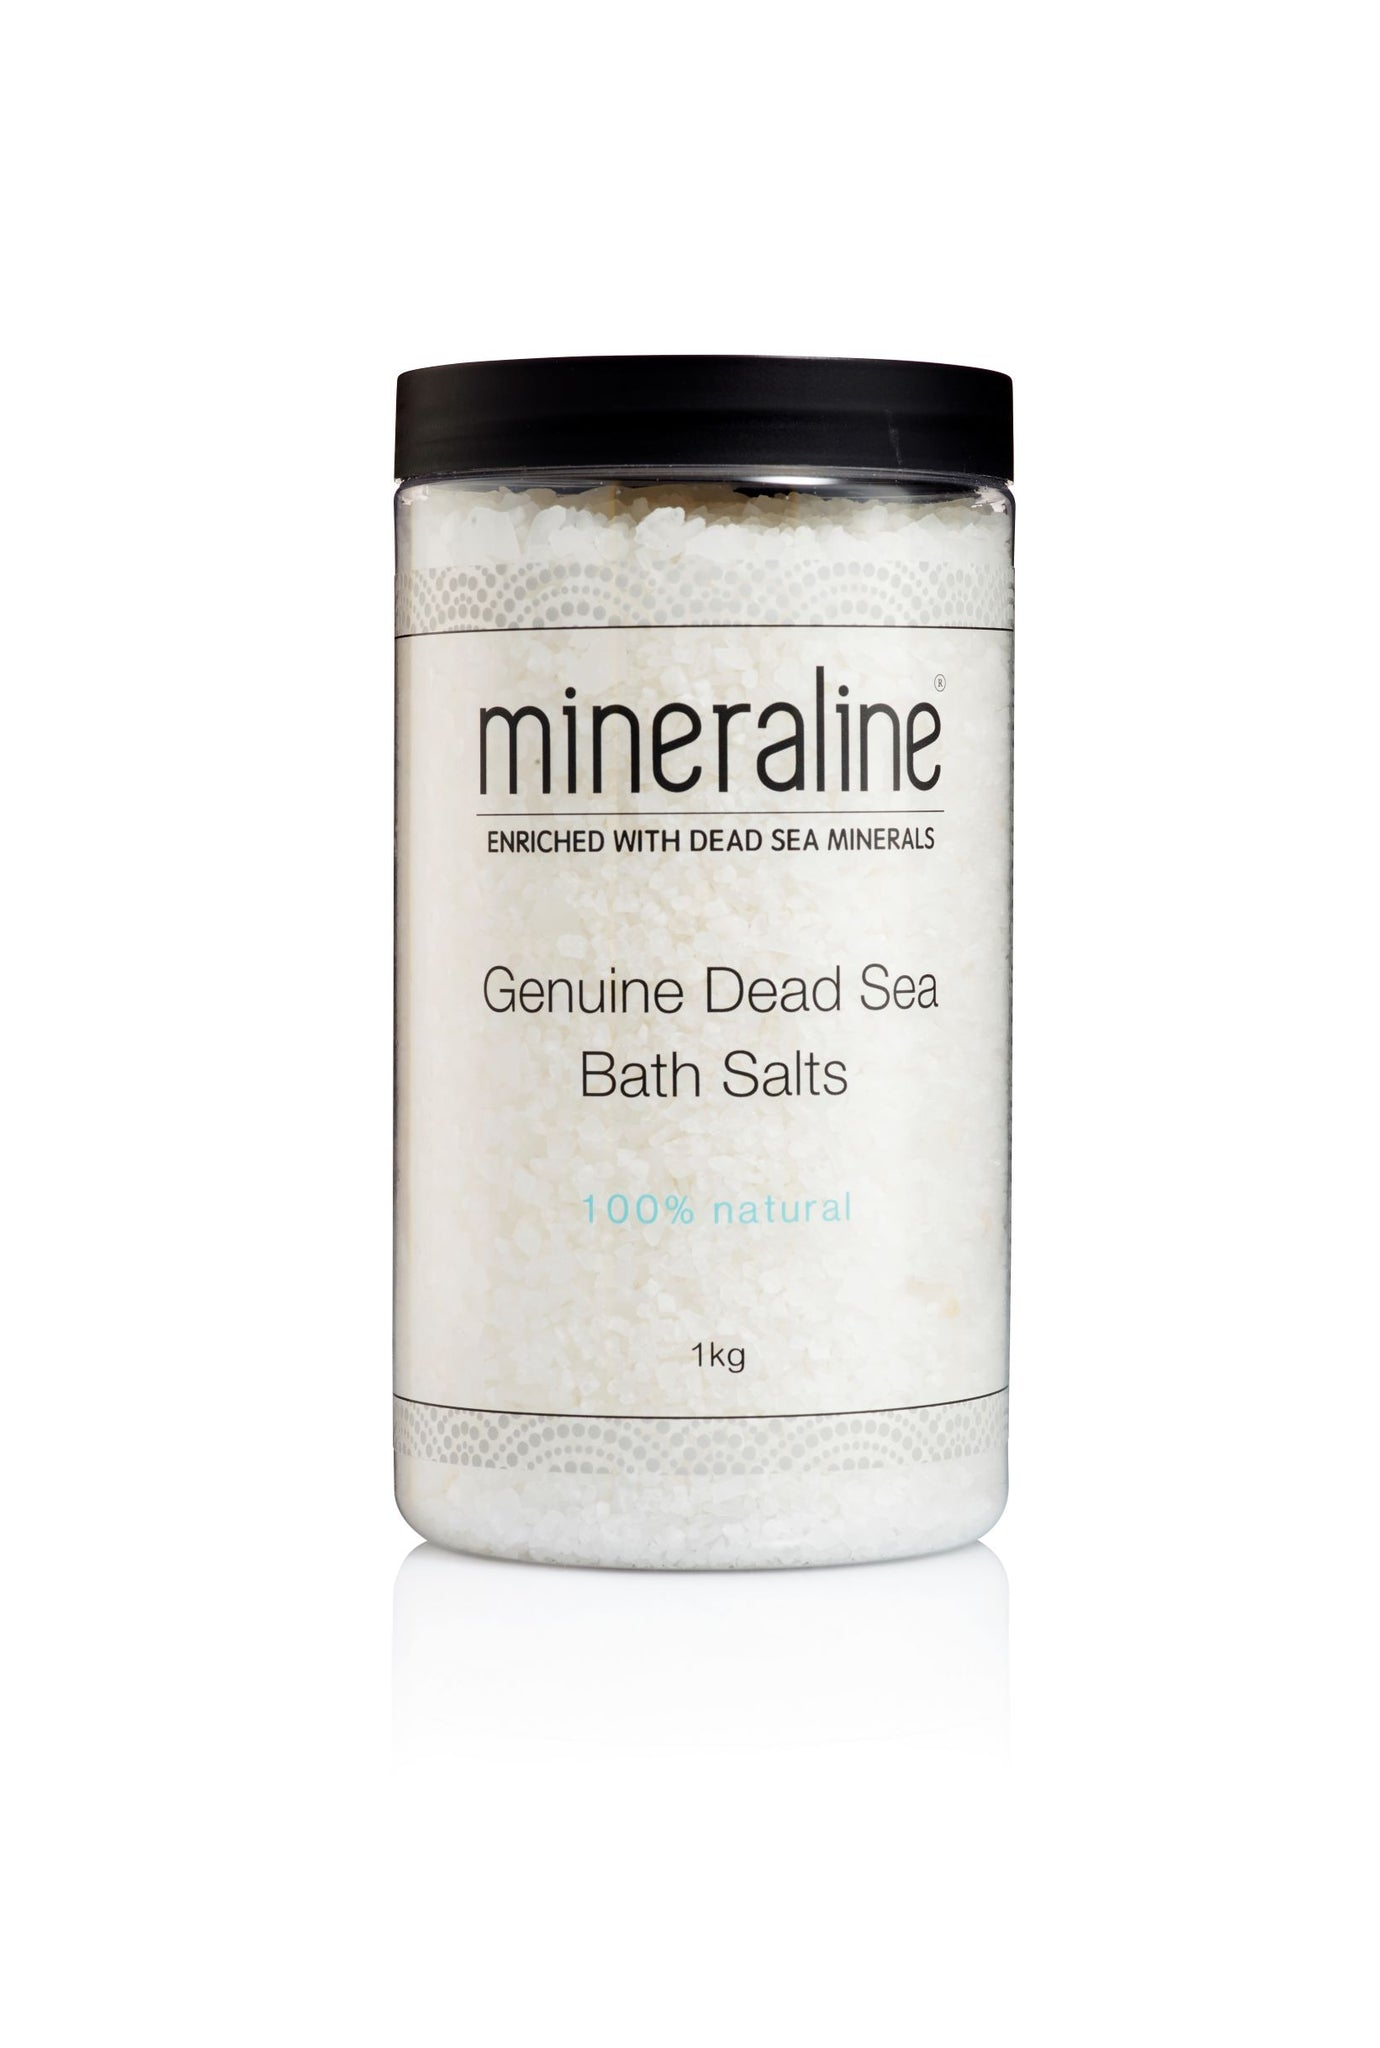 mineraline Genuine Dead Sea Bath Salts (1 kg)